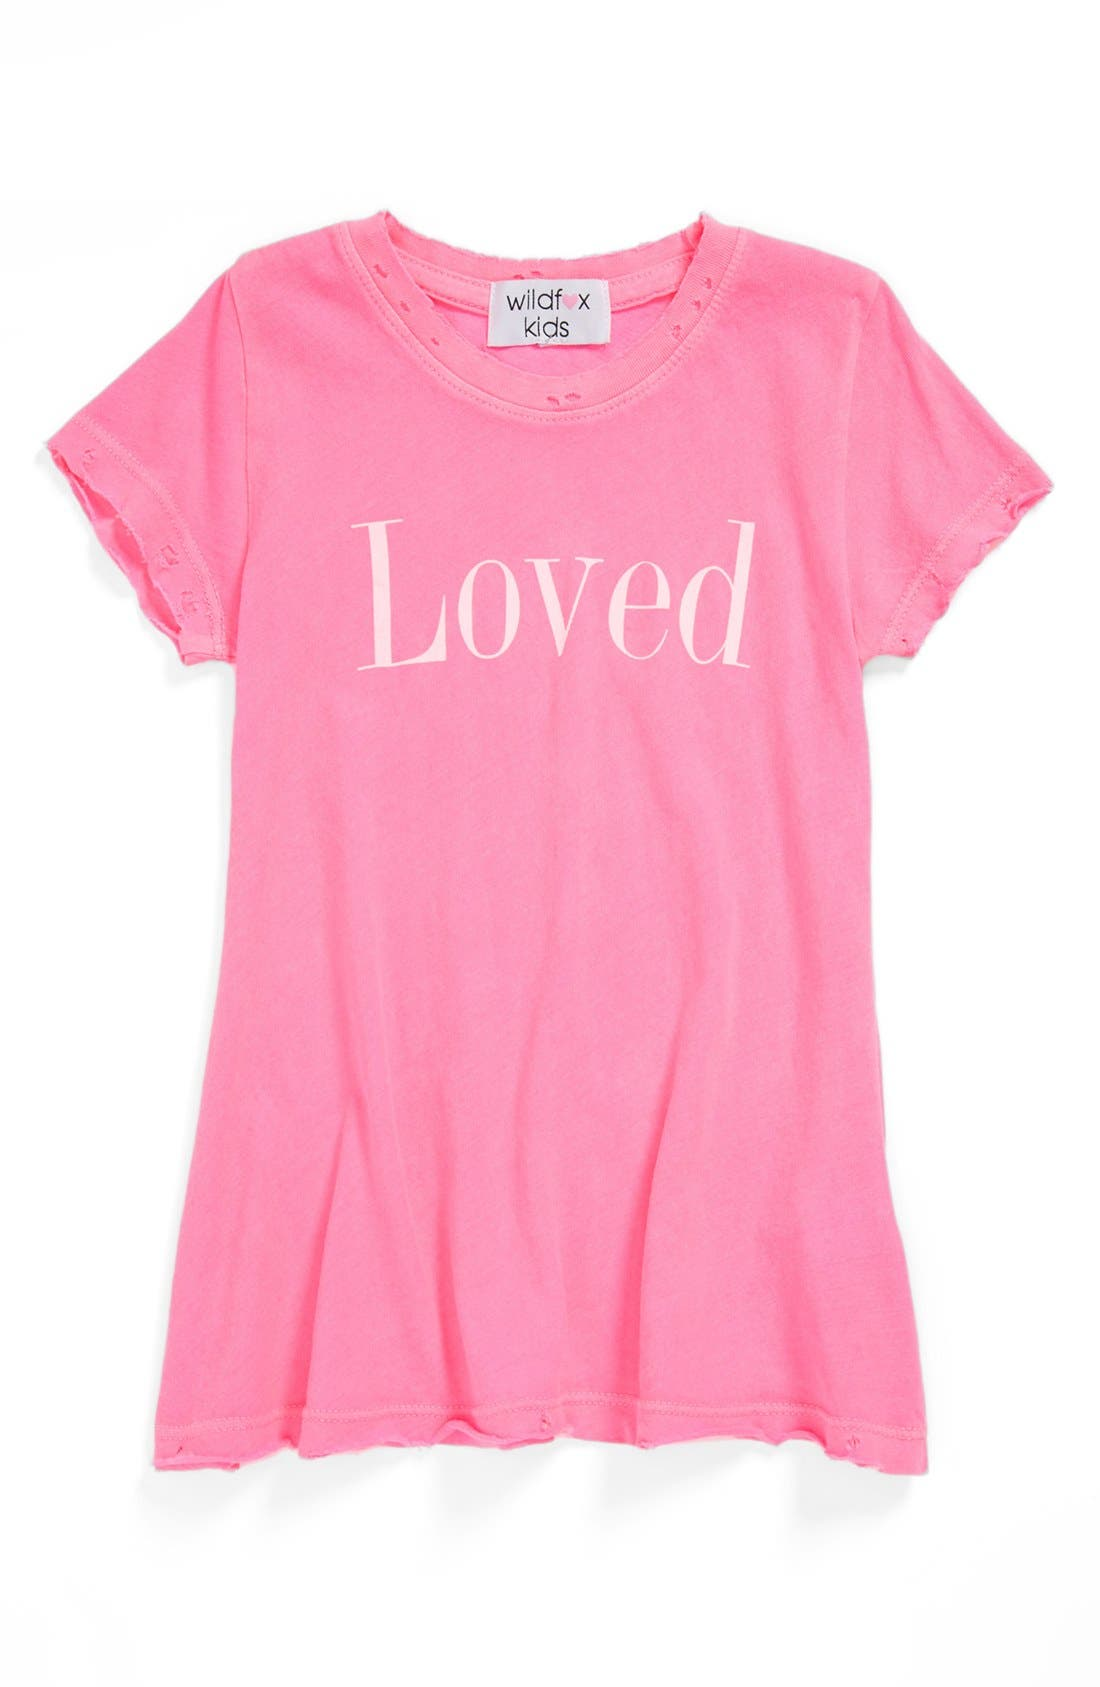 Alternate Image 1 Selected - Wildfox 'Loved' Tee (Little Girls)